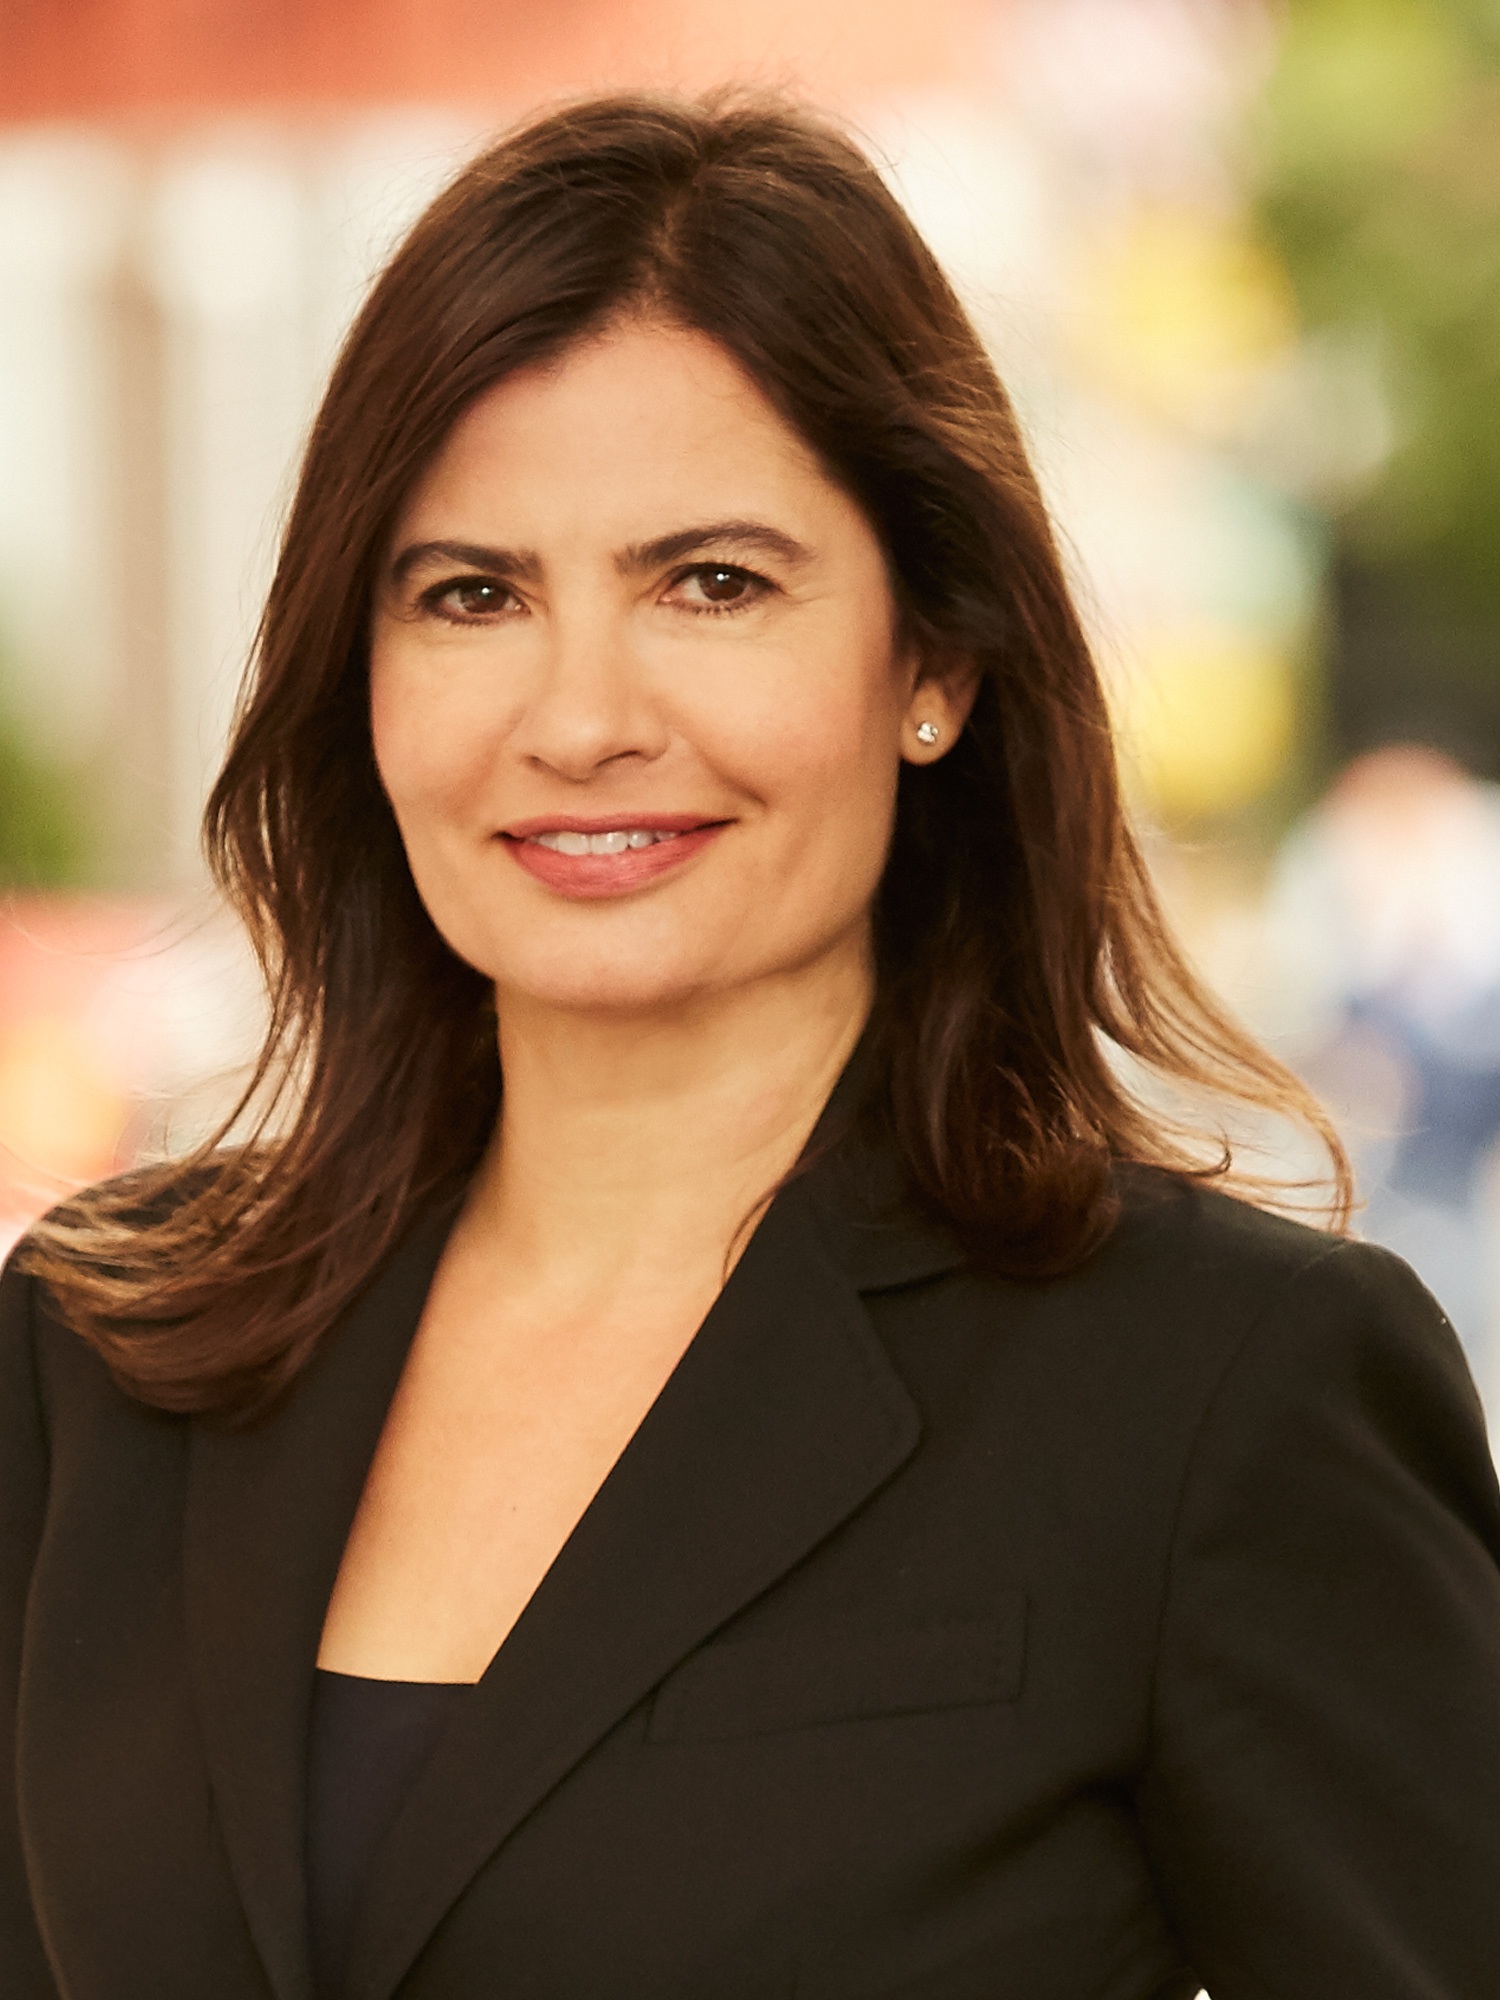 Michele Silverman, a top realtor in New York City for Corcoran, a real estate firm in Park Slope.